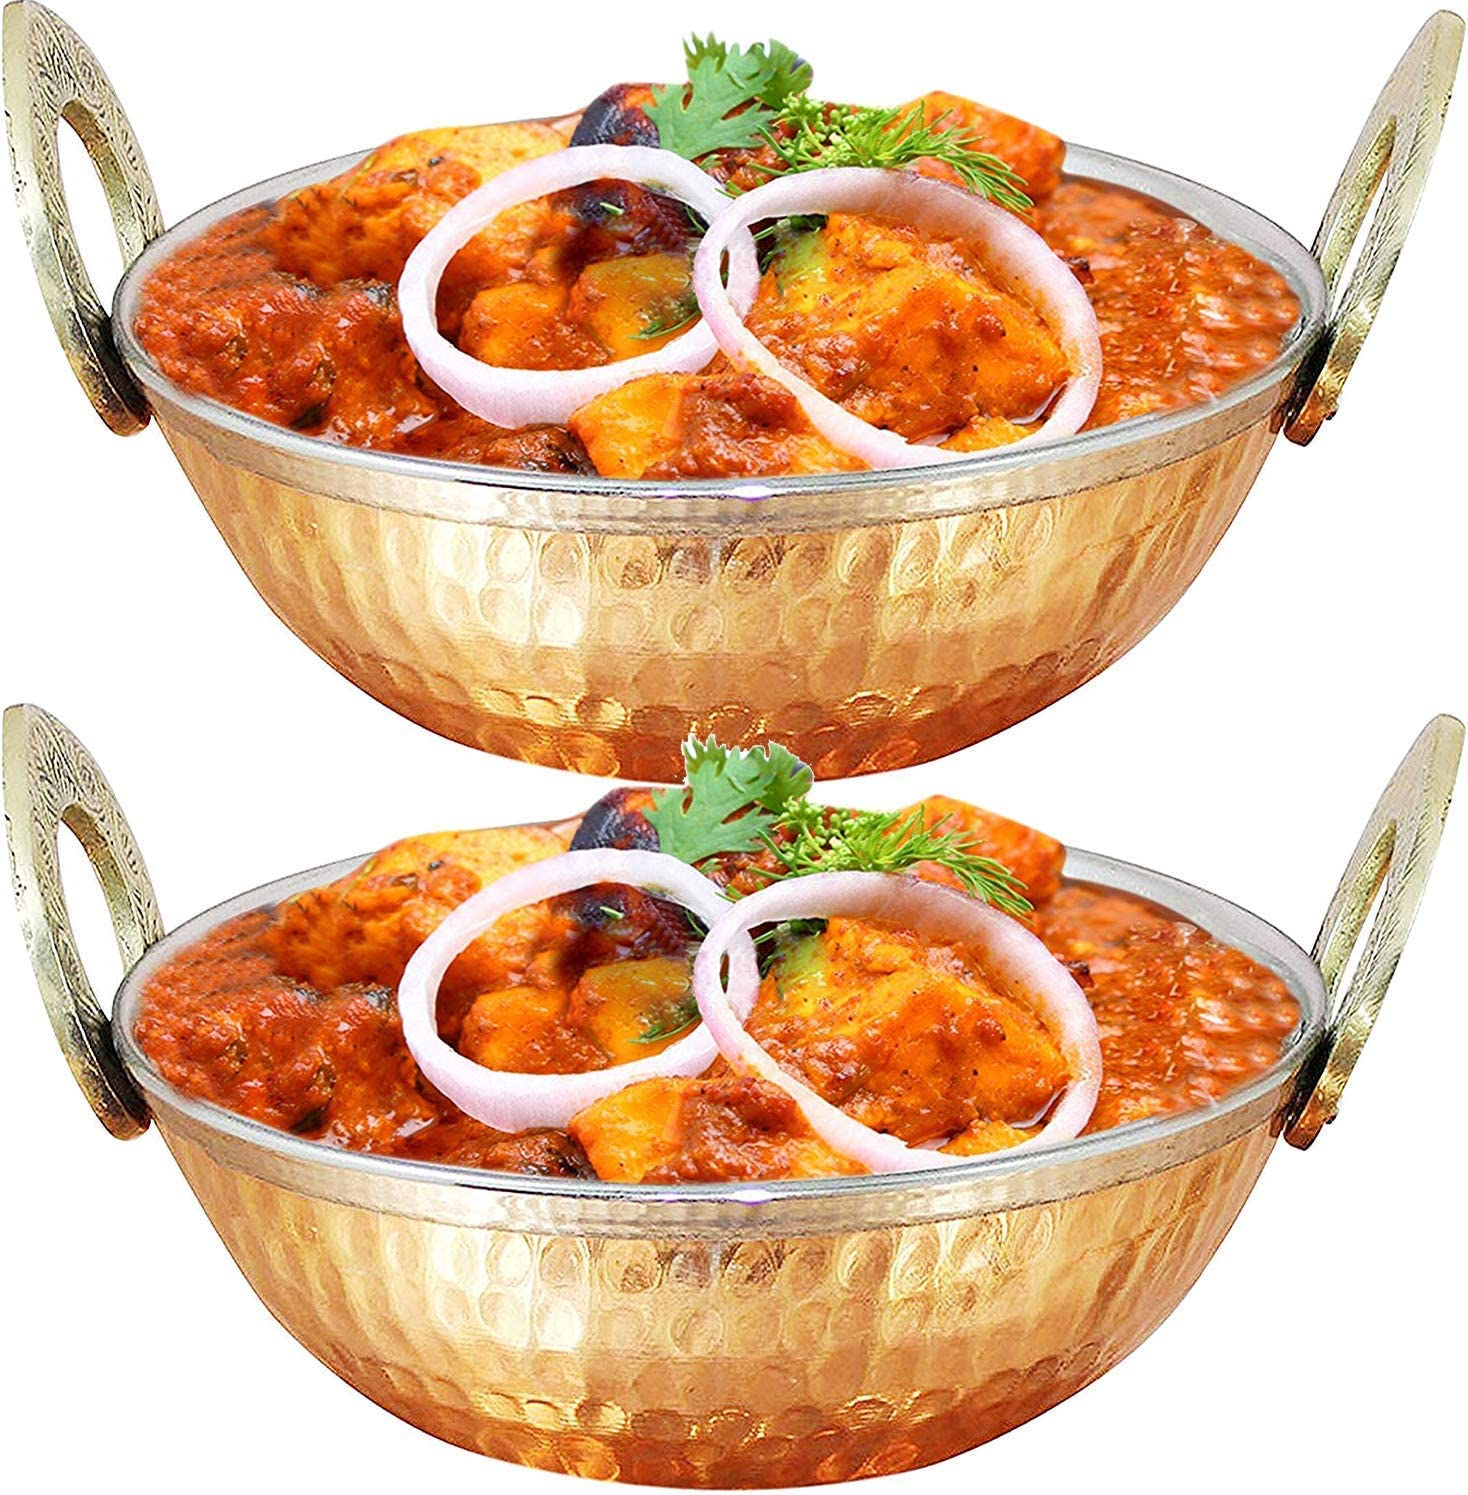 IndiaBigShop Pure Copper, Stainless Steel Bowls with Solid Brass Handle Serveware Accessories Karahi Pan for Indian Food - Set of 4